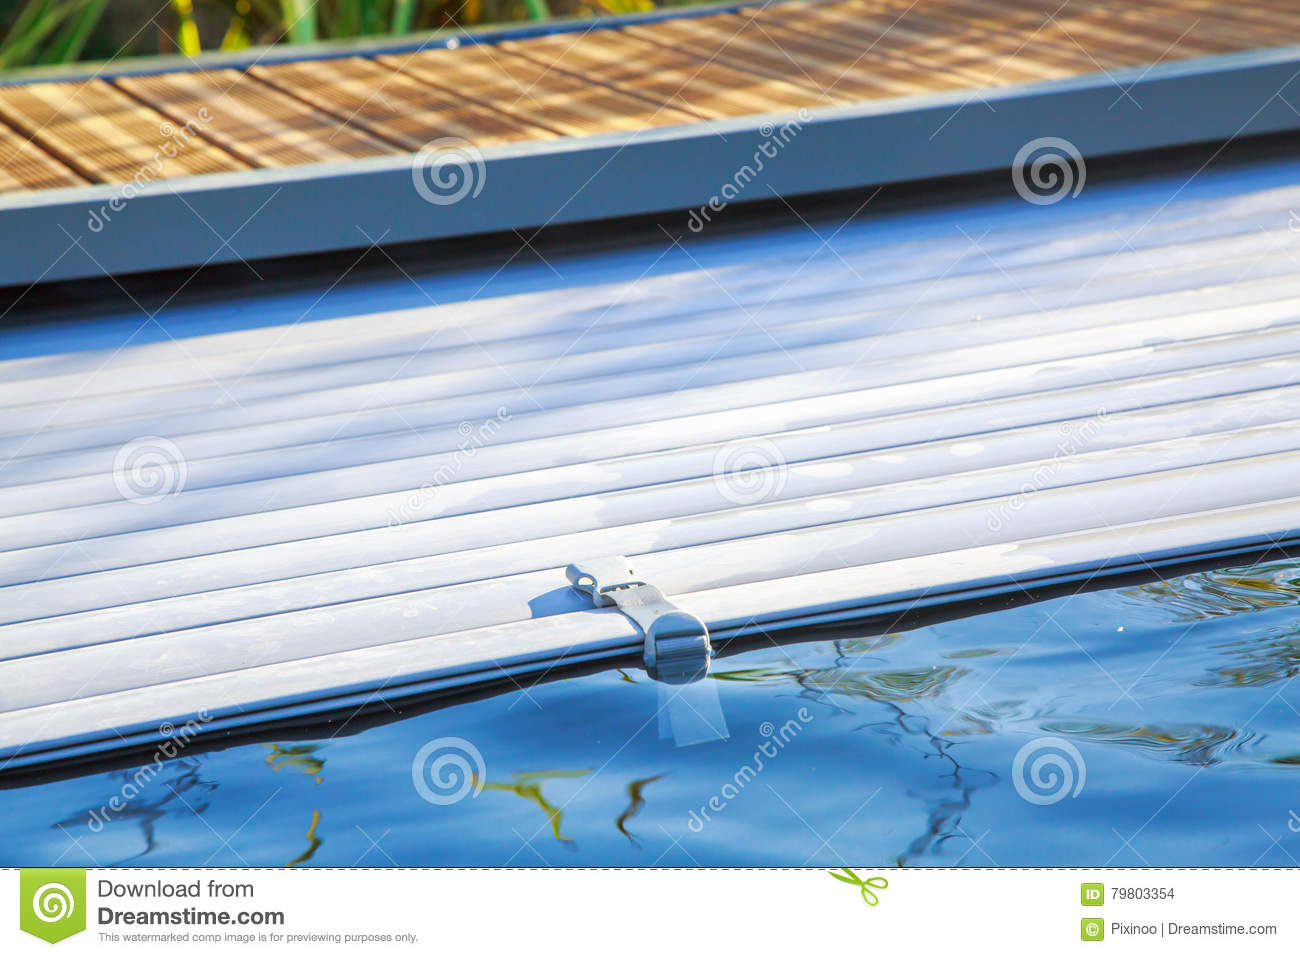 Delightful Swimming Pool Roller Shutter Covers Stock Photo   Image Of Pool, Electric:  79803354